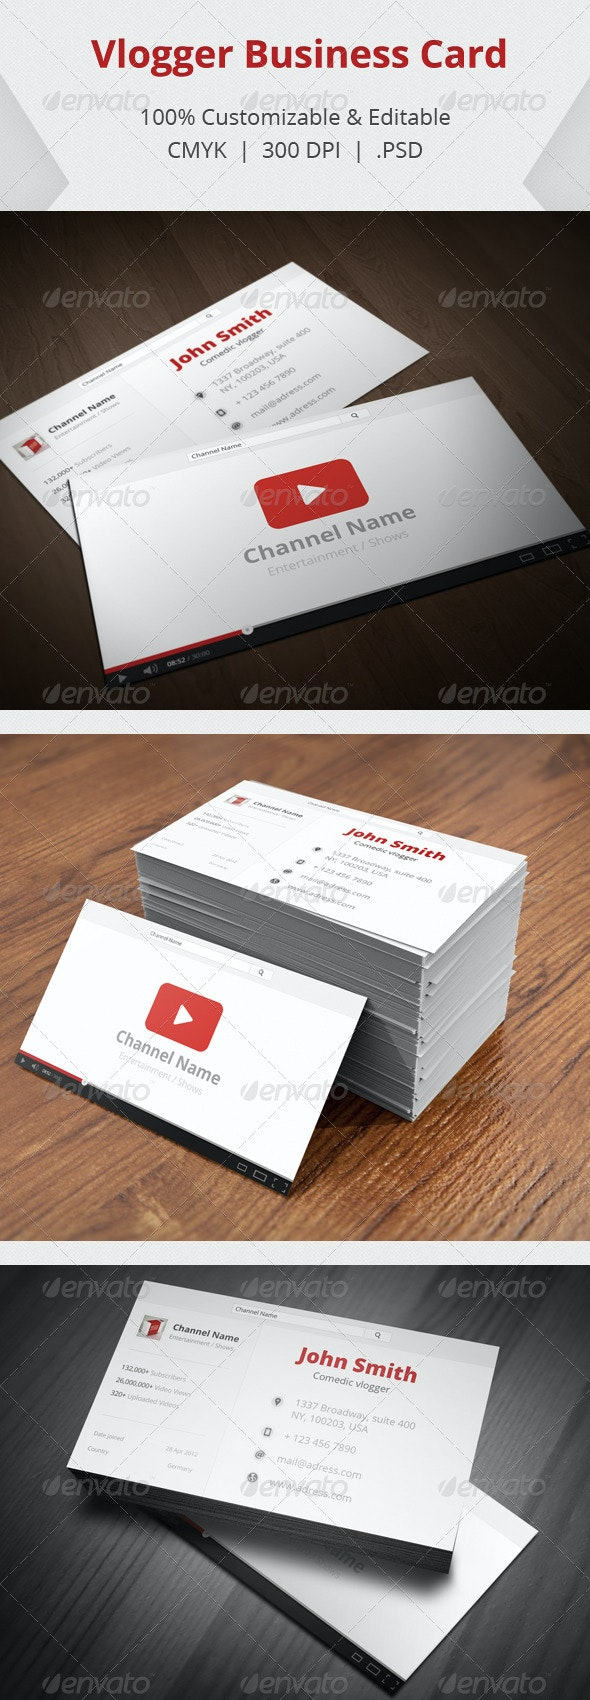 Vlogger Business  Card - Creative Business Cards